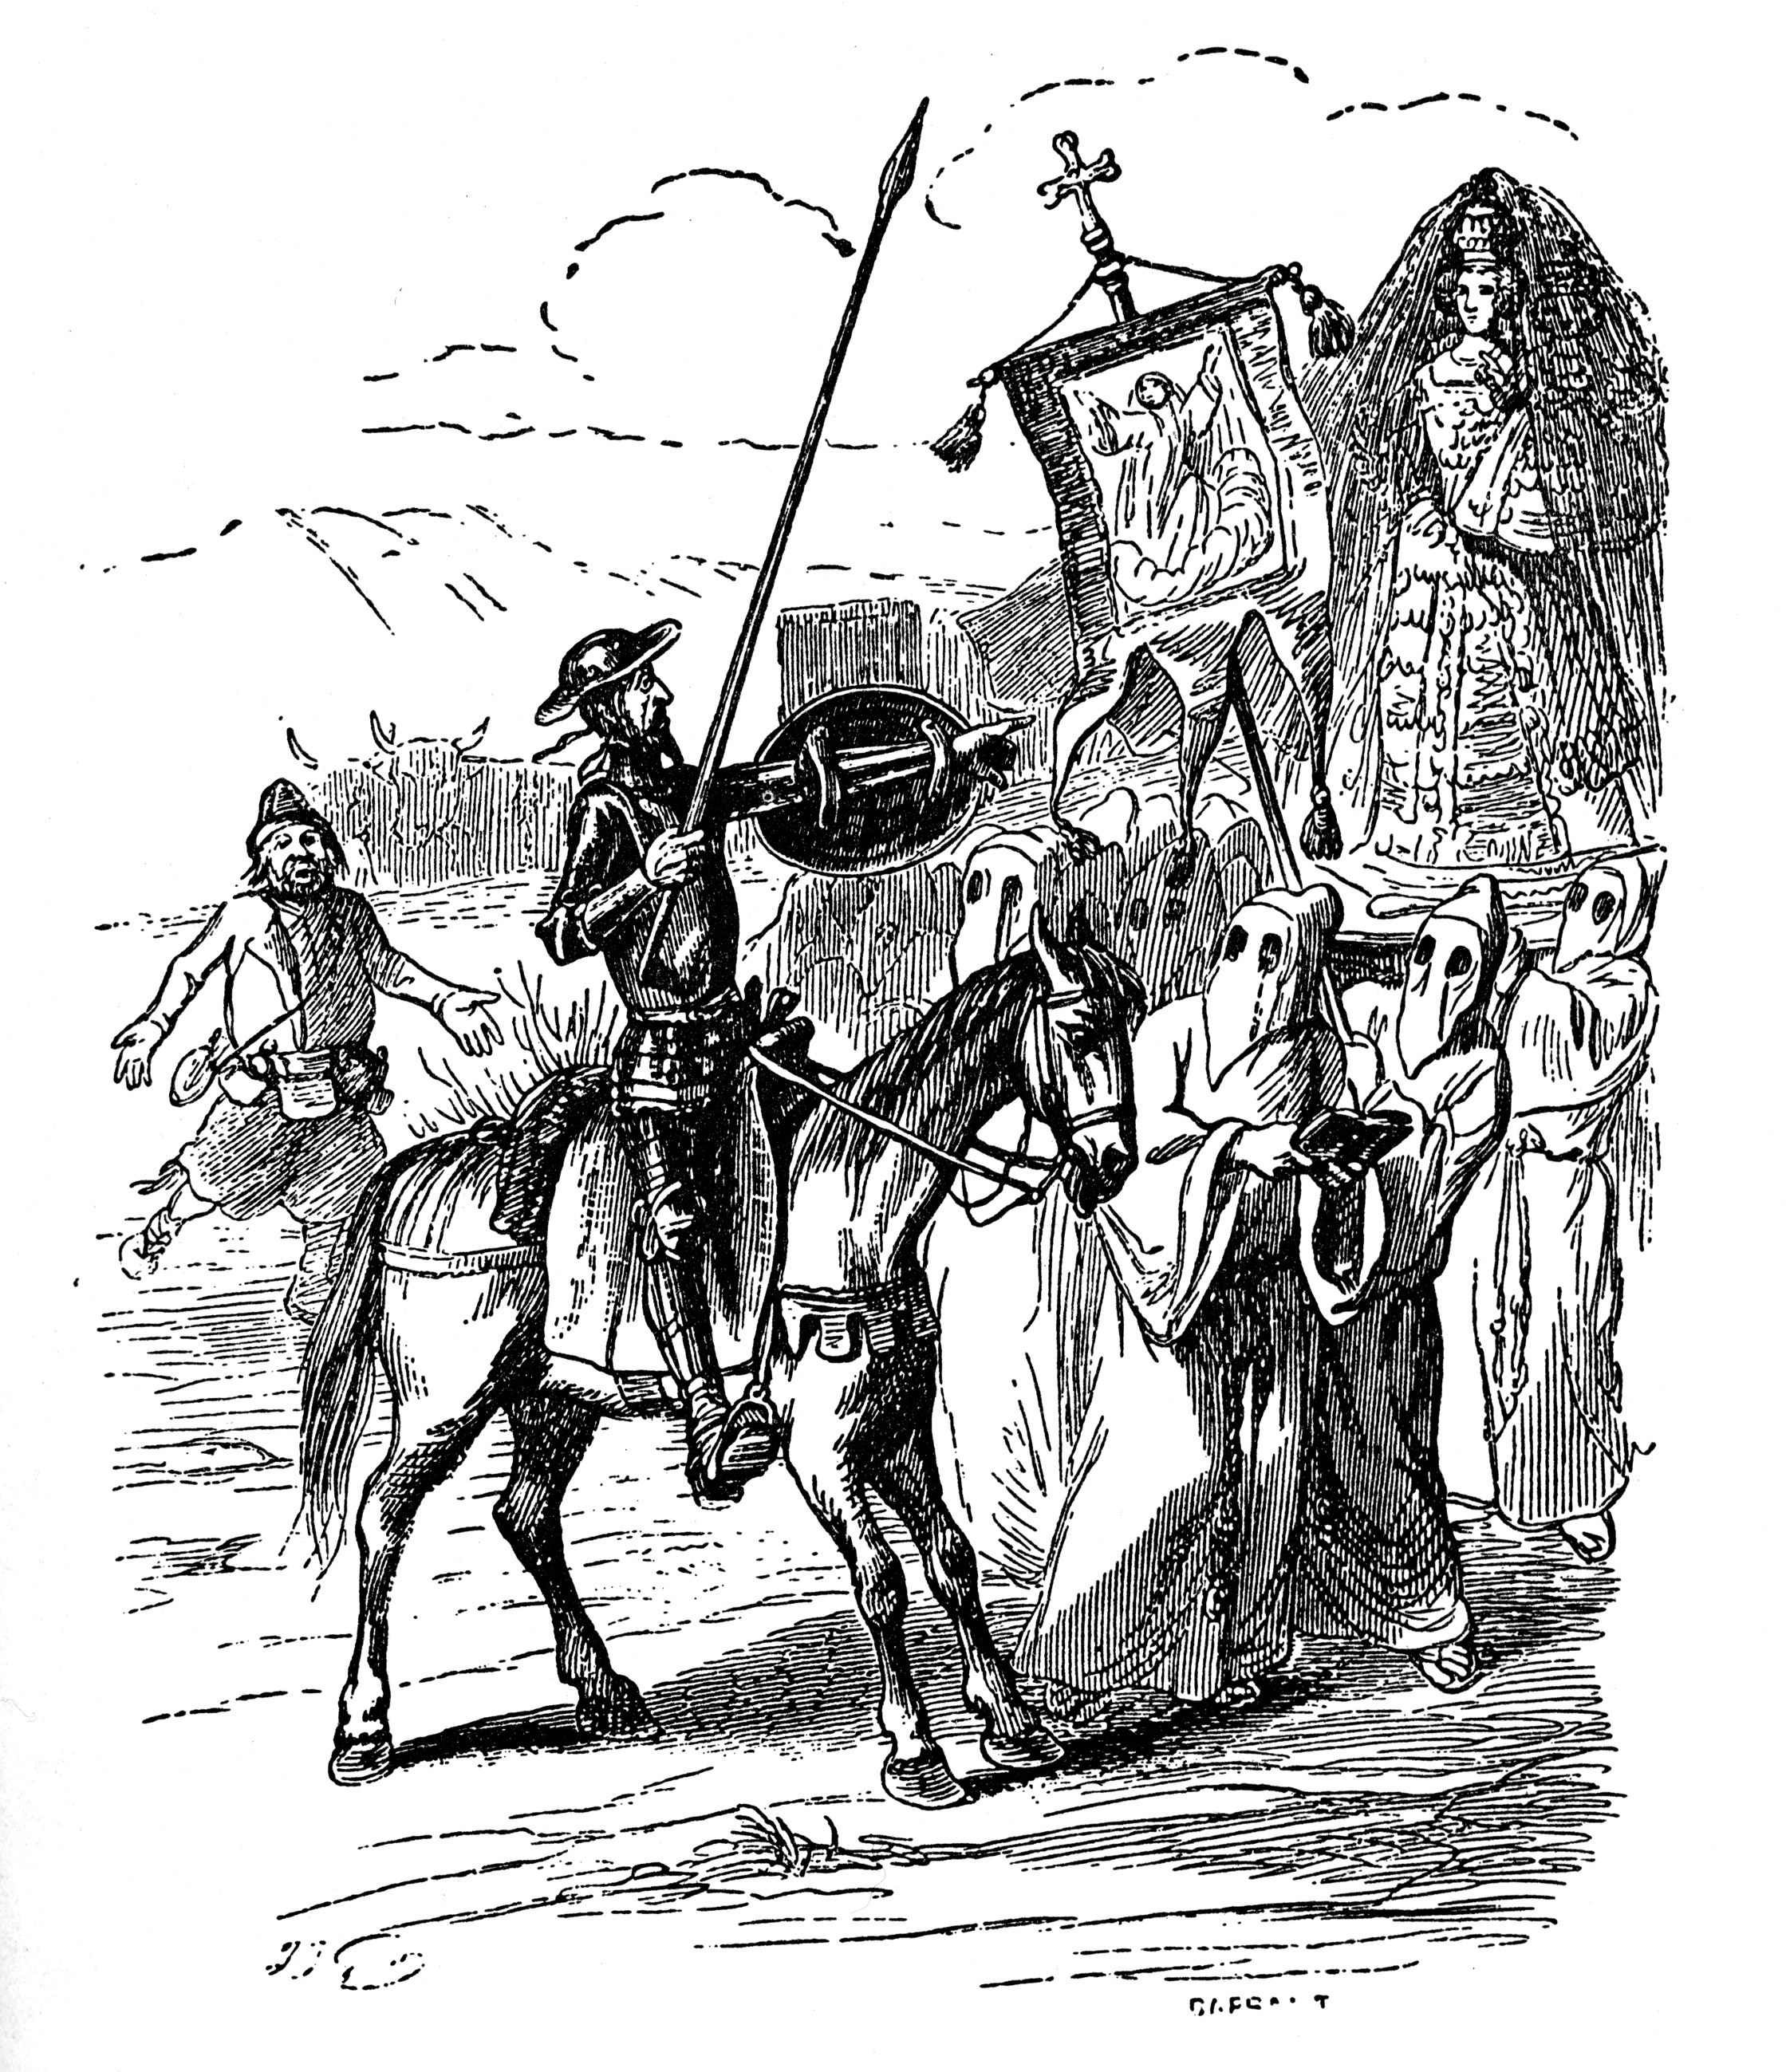 https://i2.wp.com/upload.wikimedia.org/wikipedia/commons/3/3a/Quijote-2.jpg